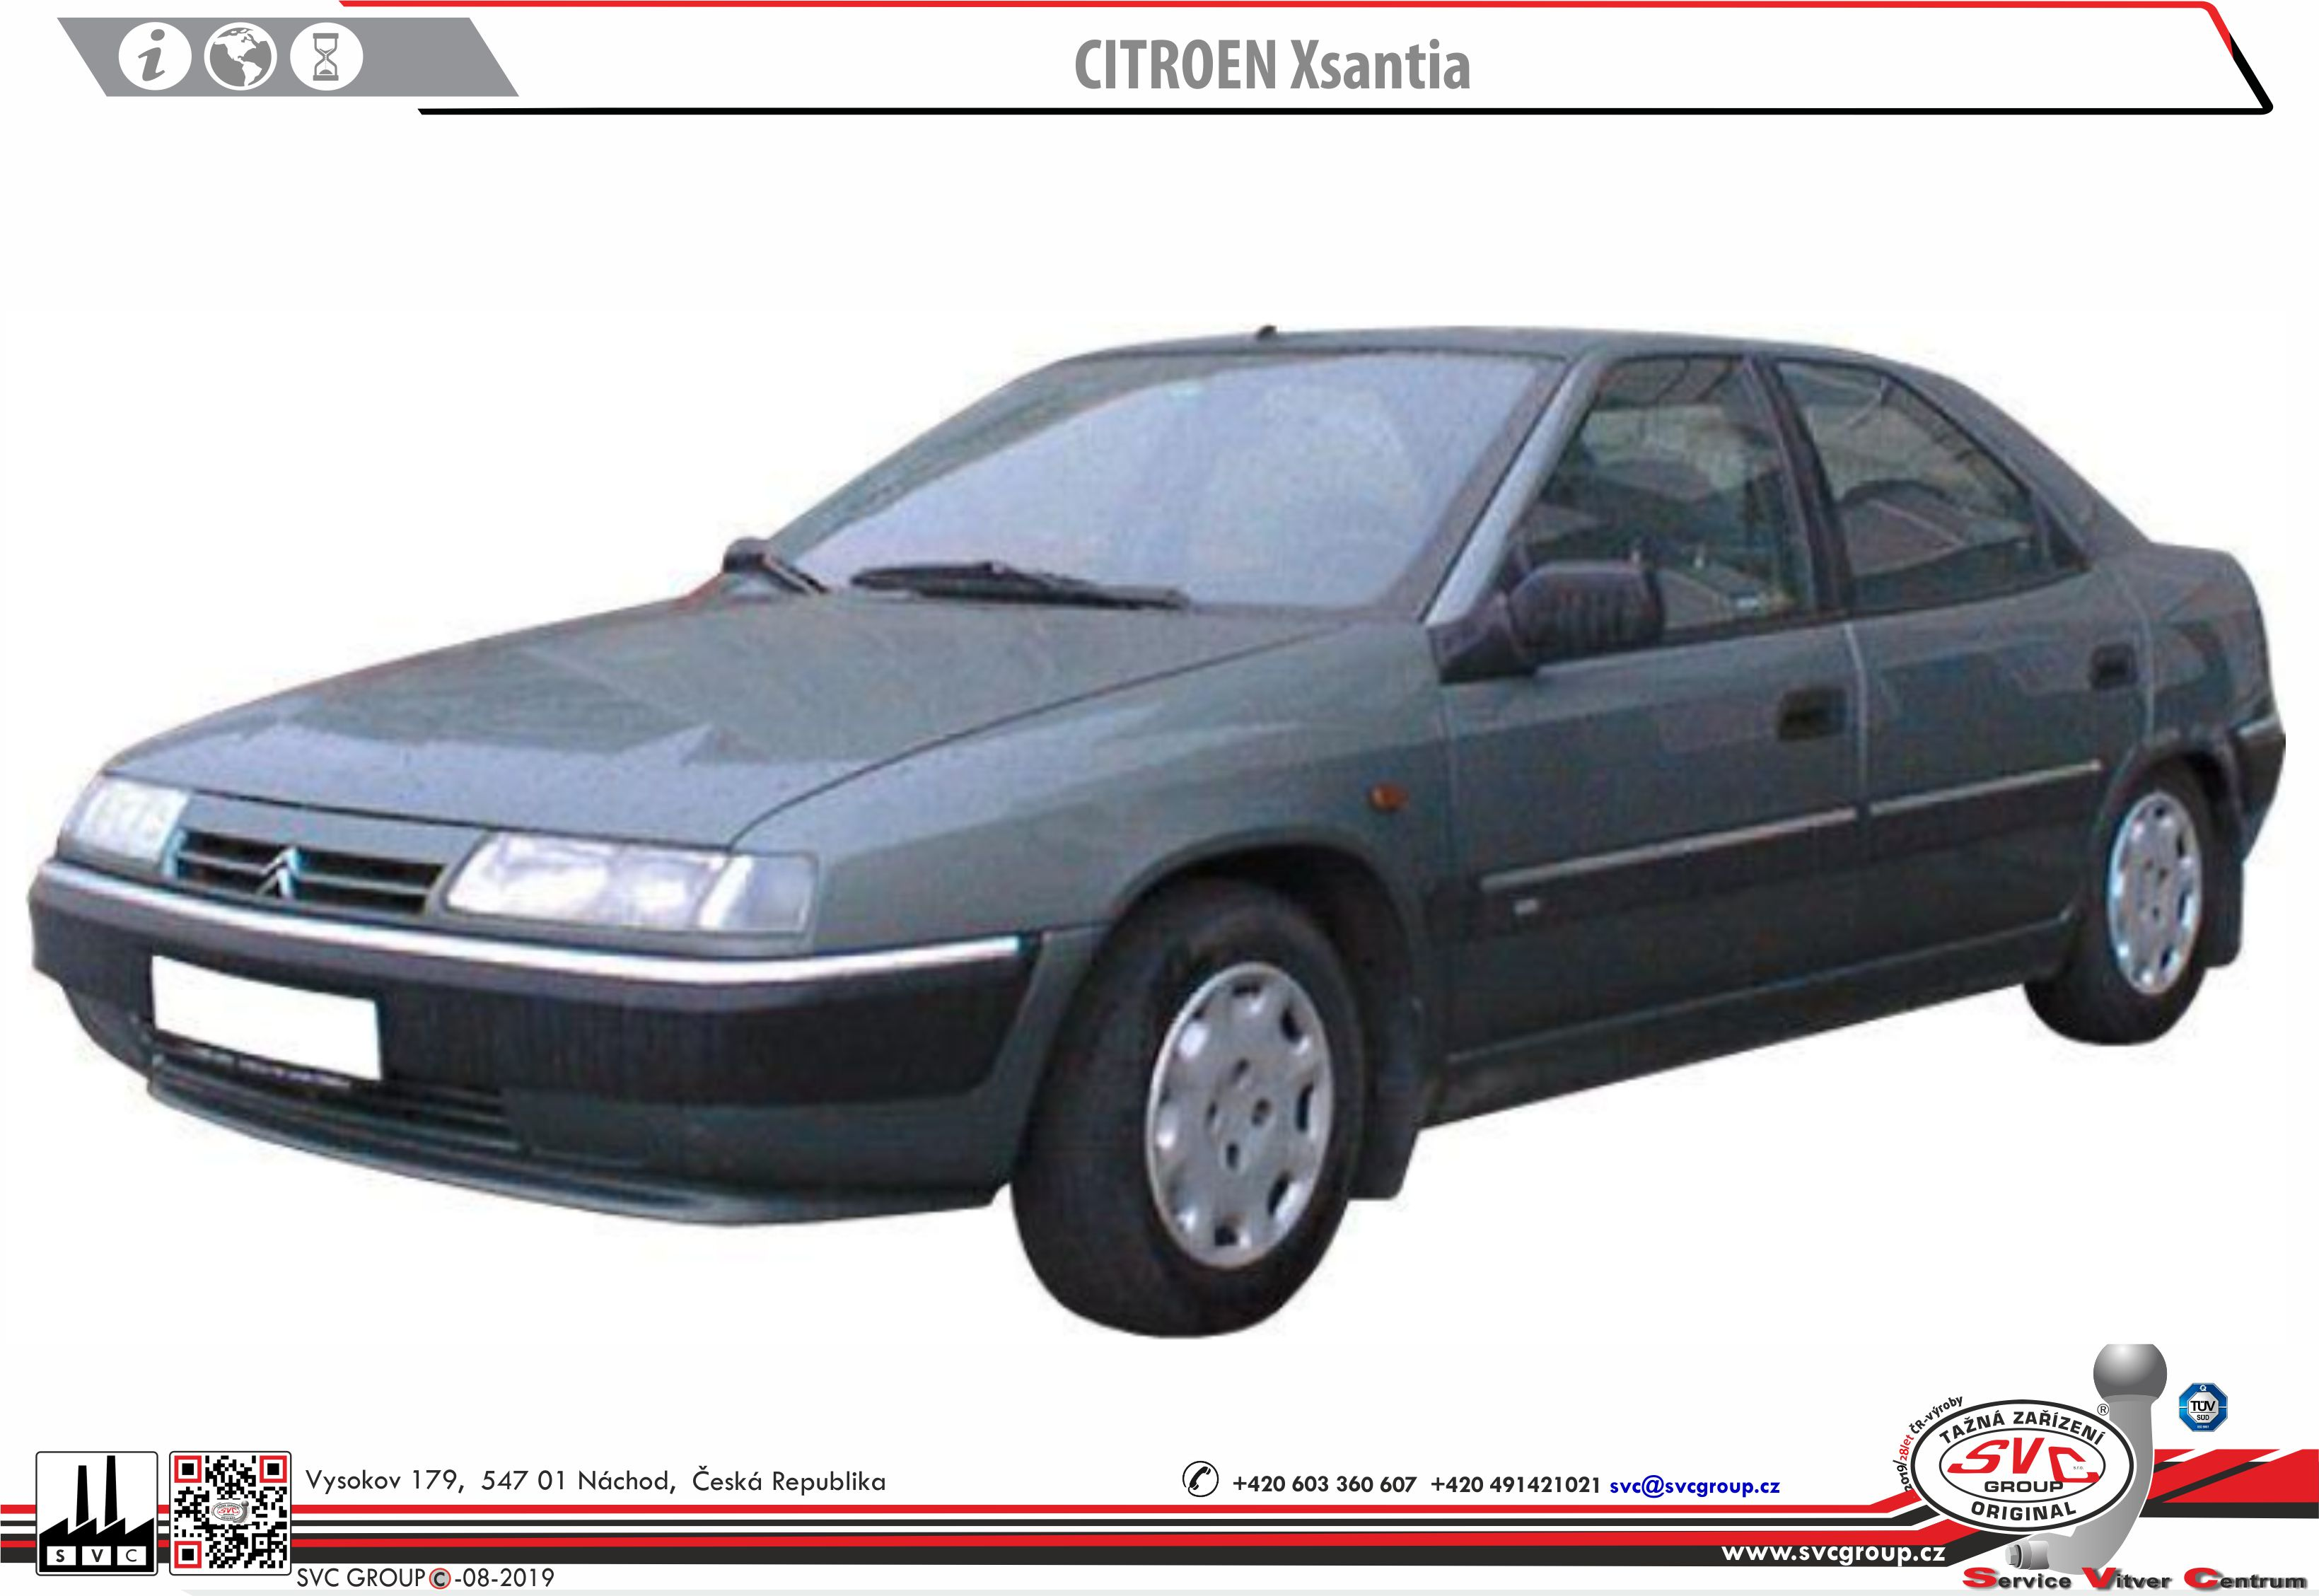 Citroën Xantia Sedan